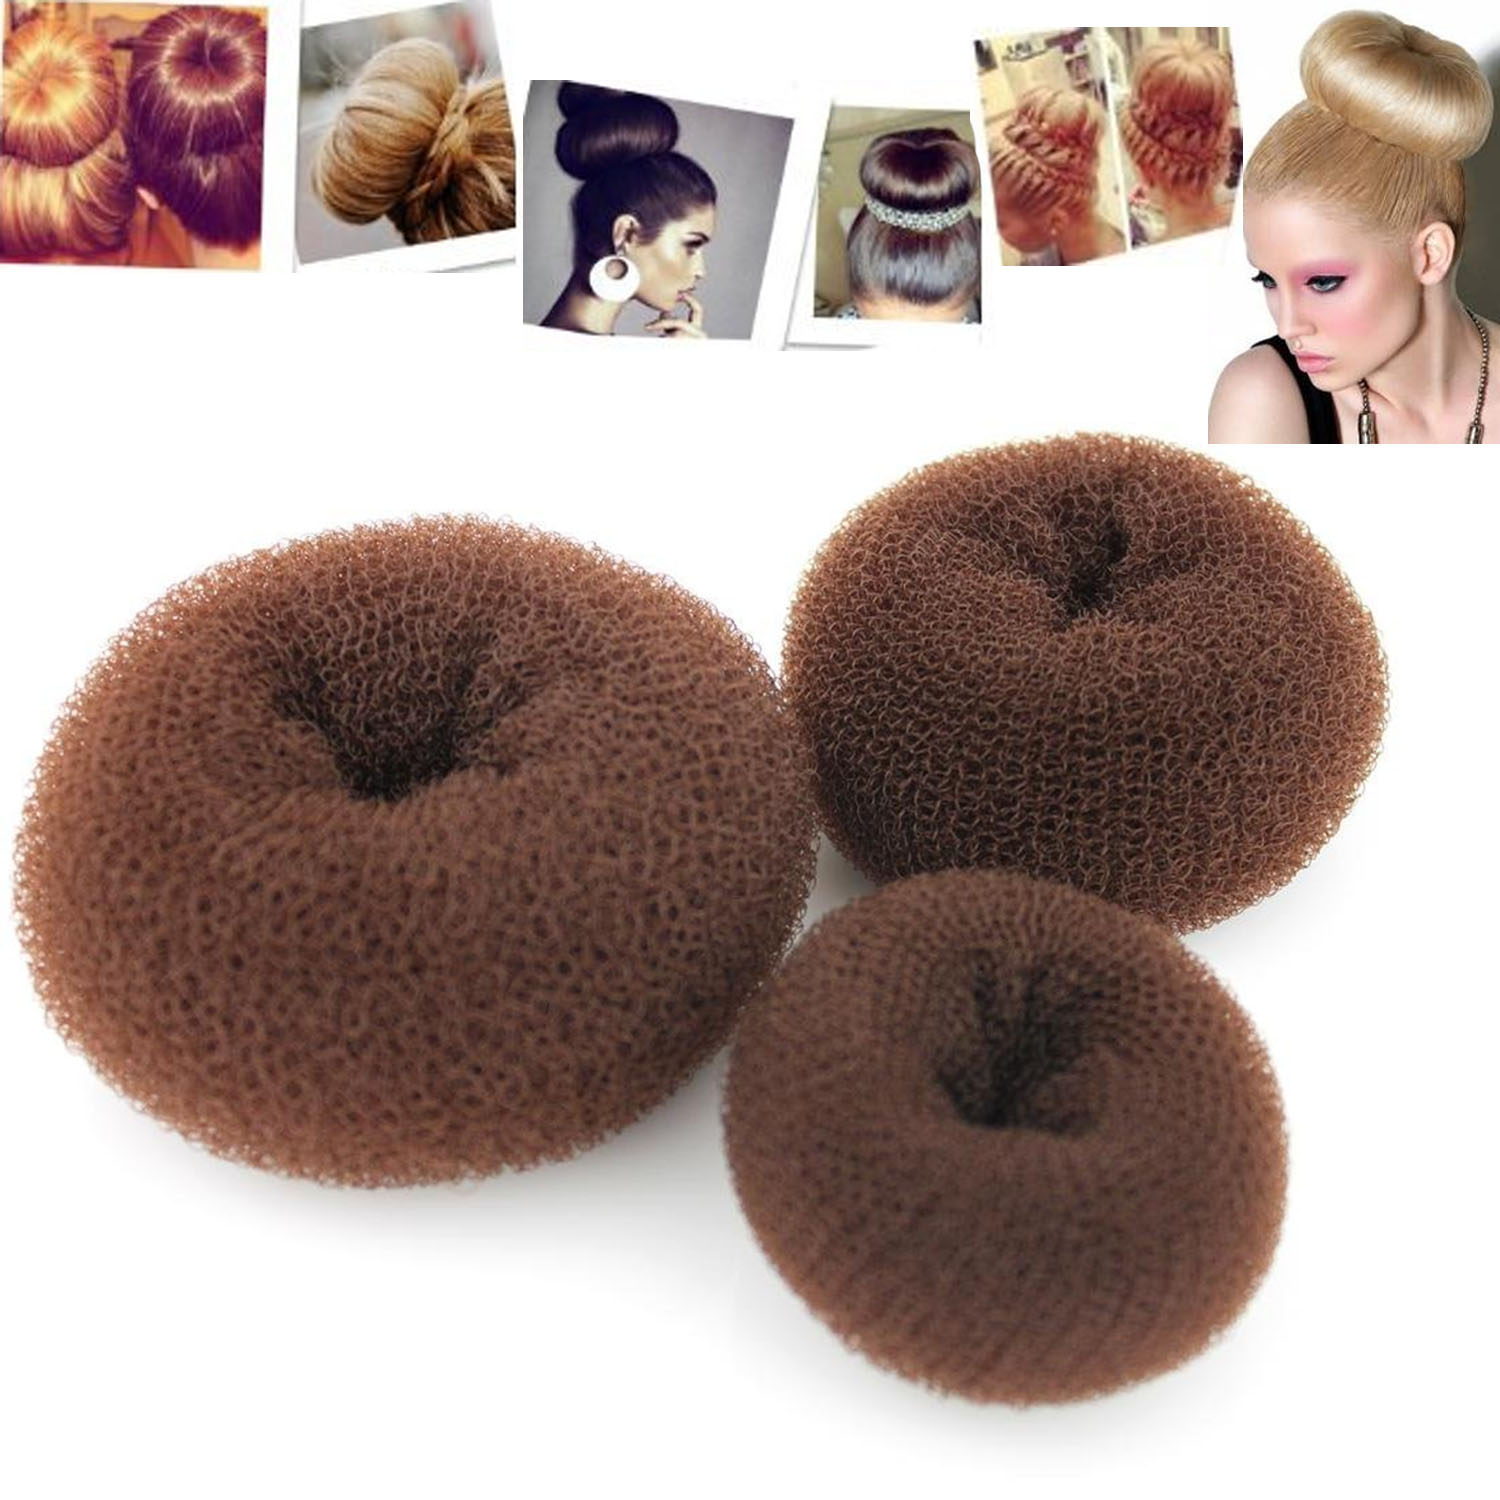 3 PCS Classy Round Brown Hair Former Doughnut Ring Styling Mesh Chignon Maker Tools Hair Bun Maker Fashion Hair Styling Tools